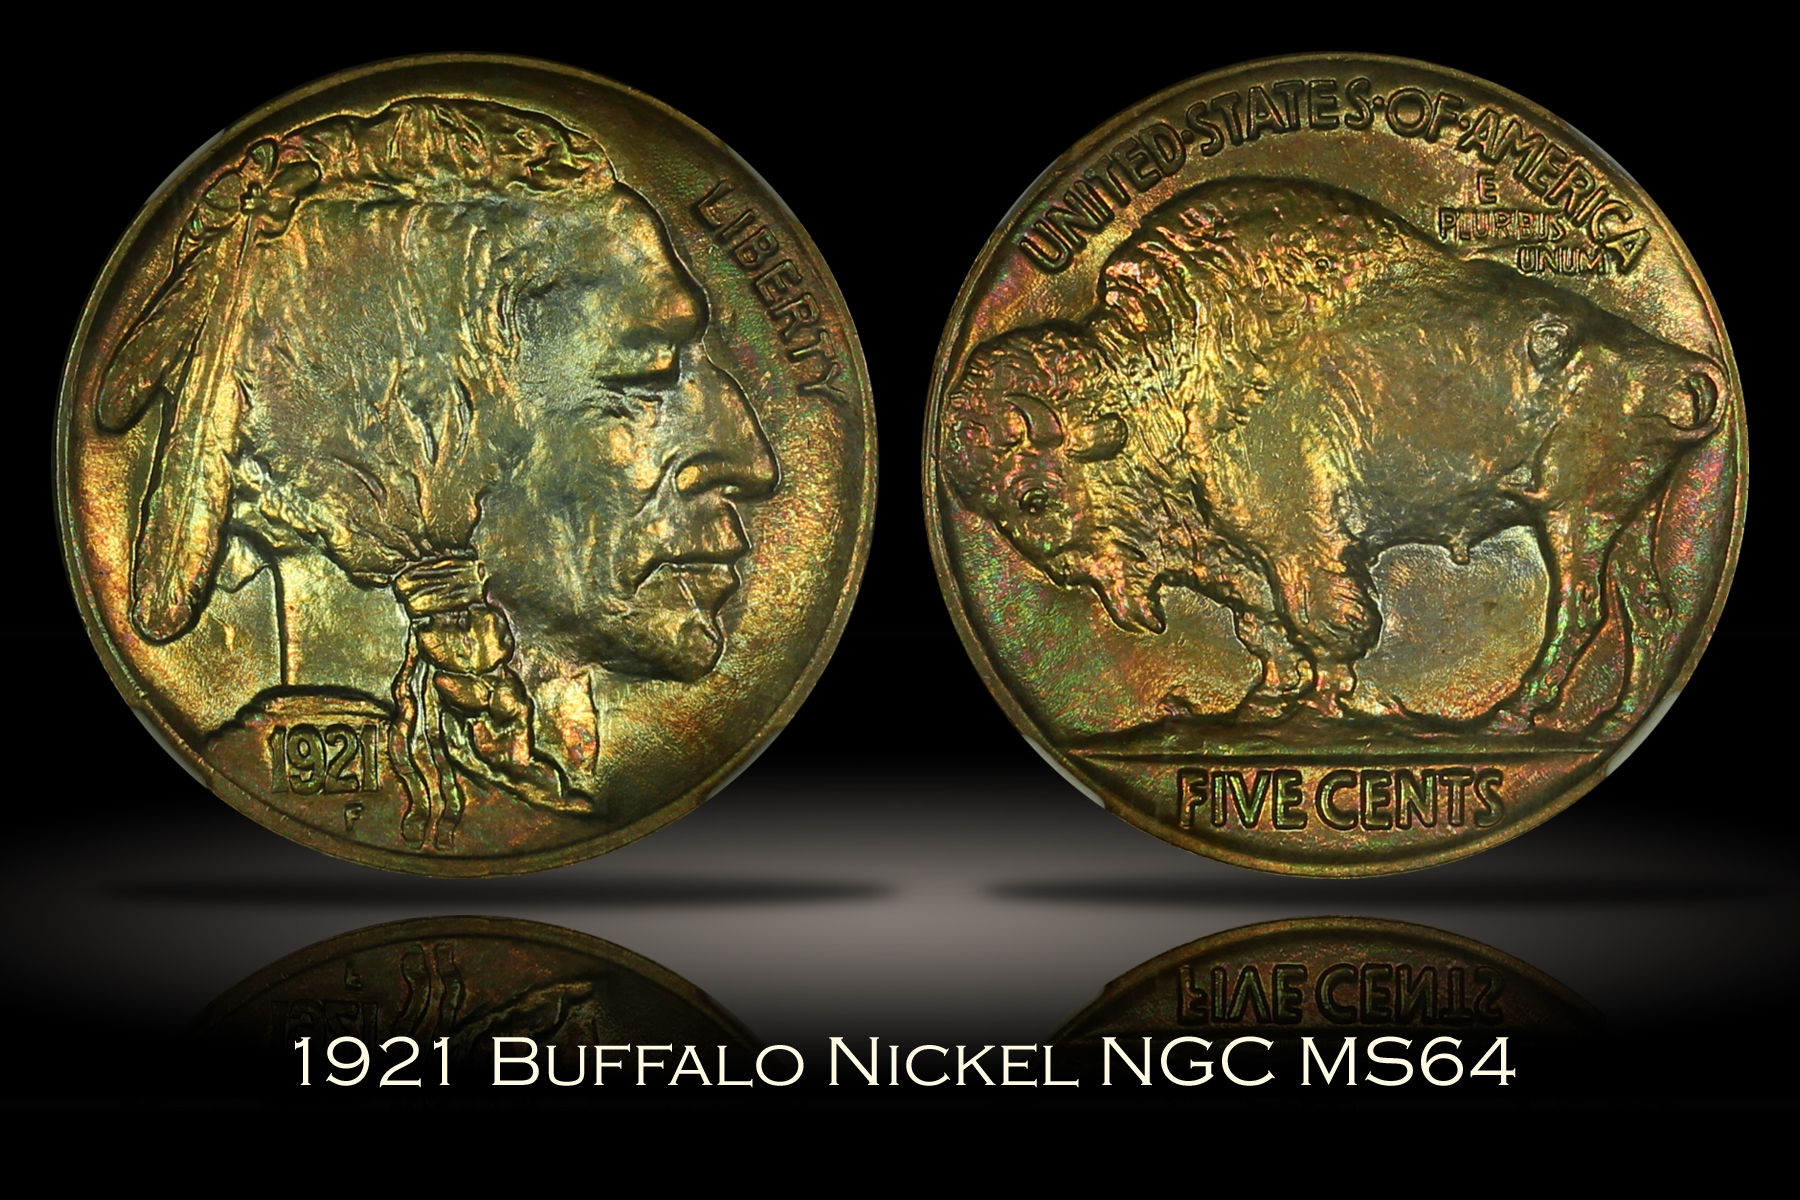 1921 Buffalo Nickel NGC MS64